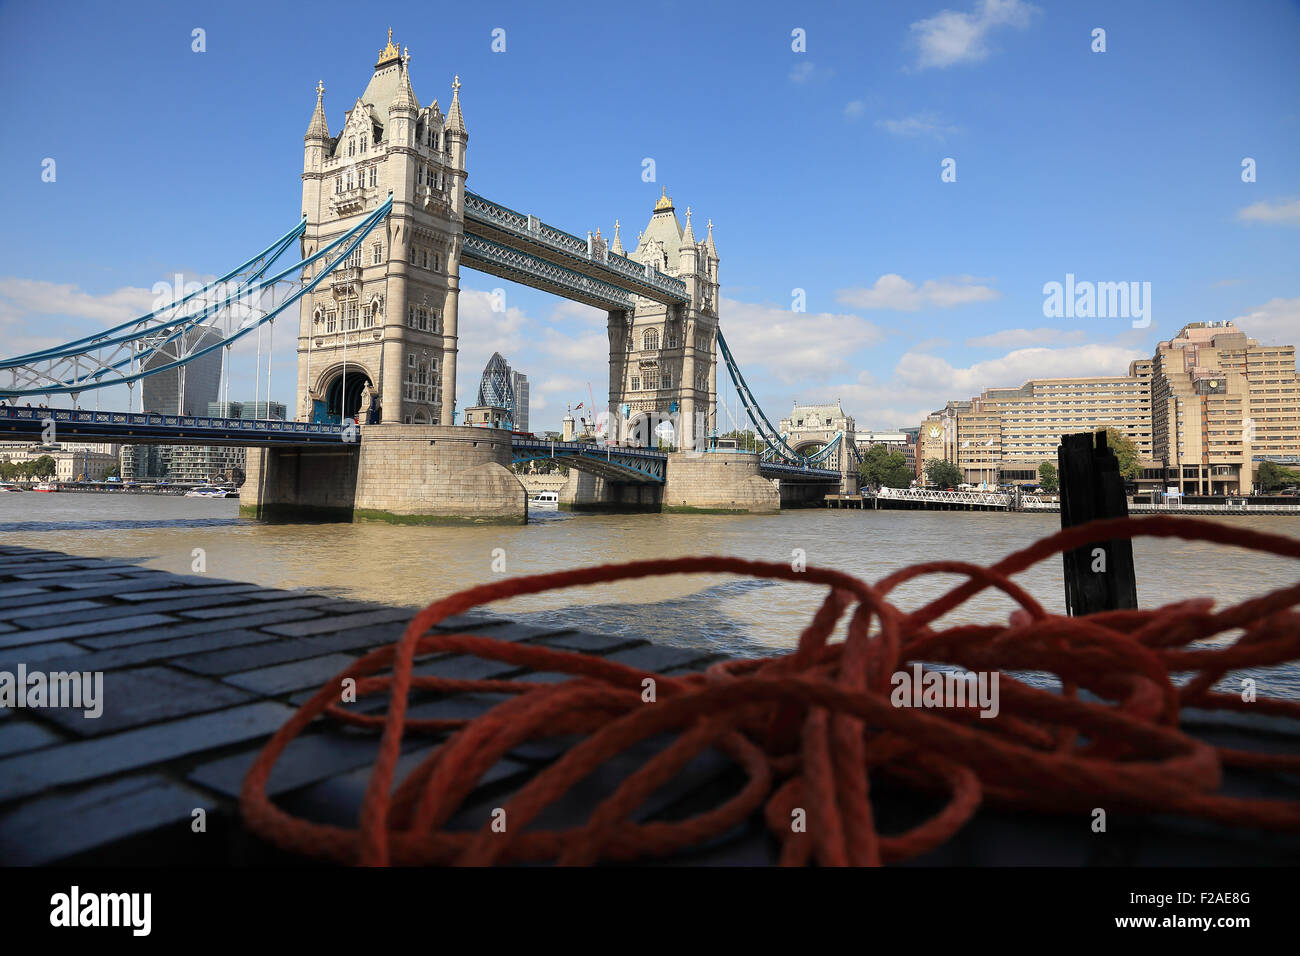 The Famous Tower Bridge On River Thames In London England